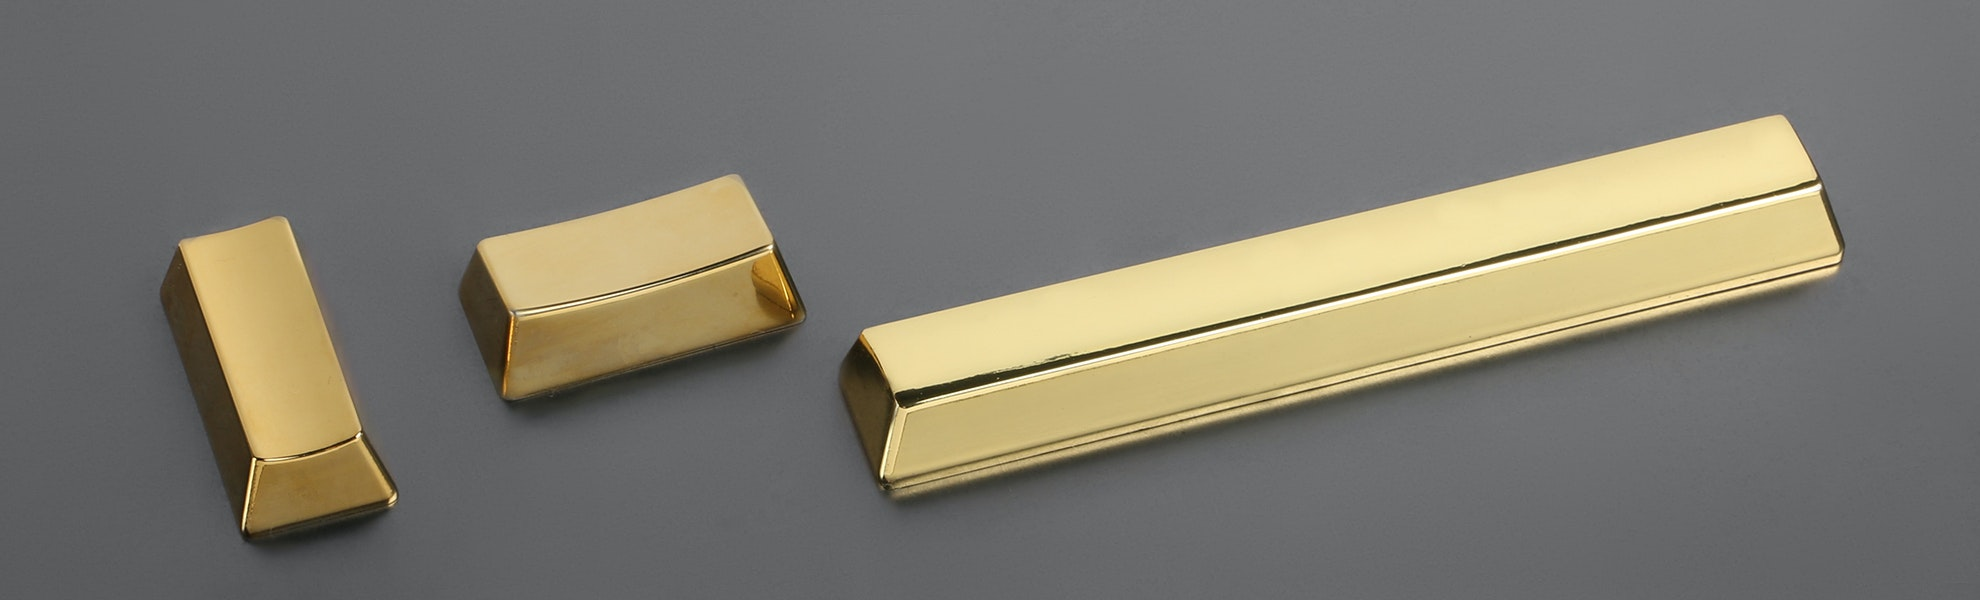 Gold Color Zinc Spacebar